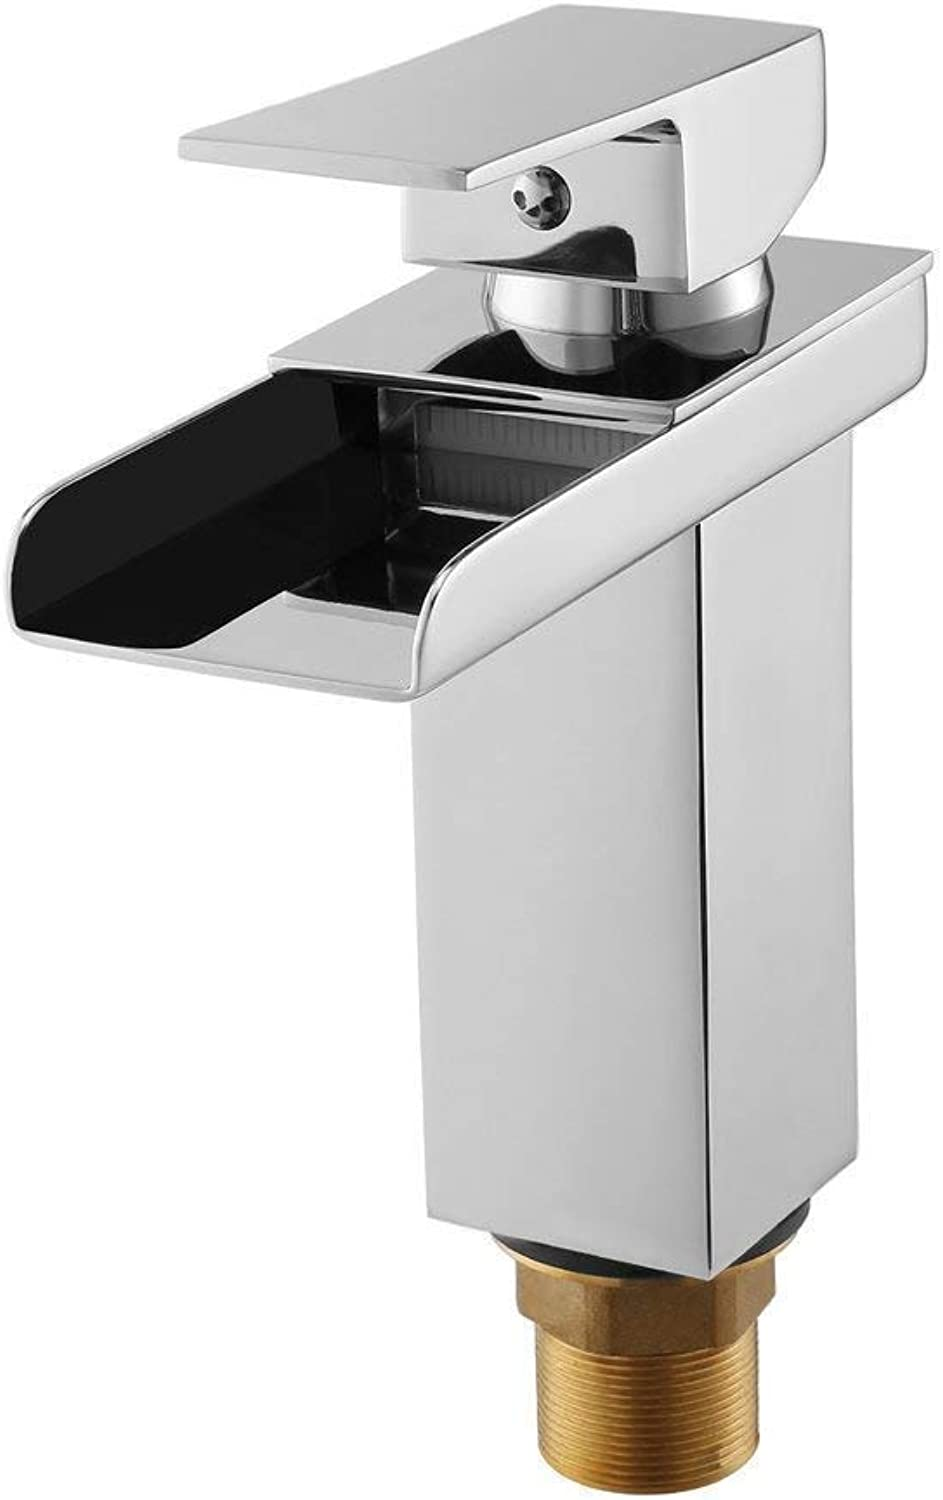 MARCU HOME Taps Faucet Basin Sink Mixer Taps,Waterfall Faucet, Bathroom Lever Single Handle Chrome Leadless Brass Faucet